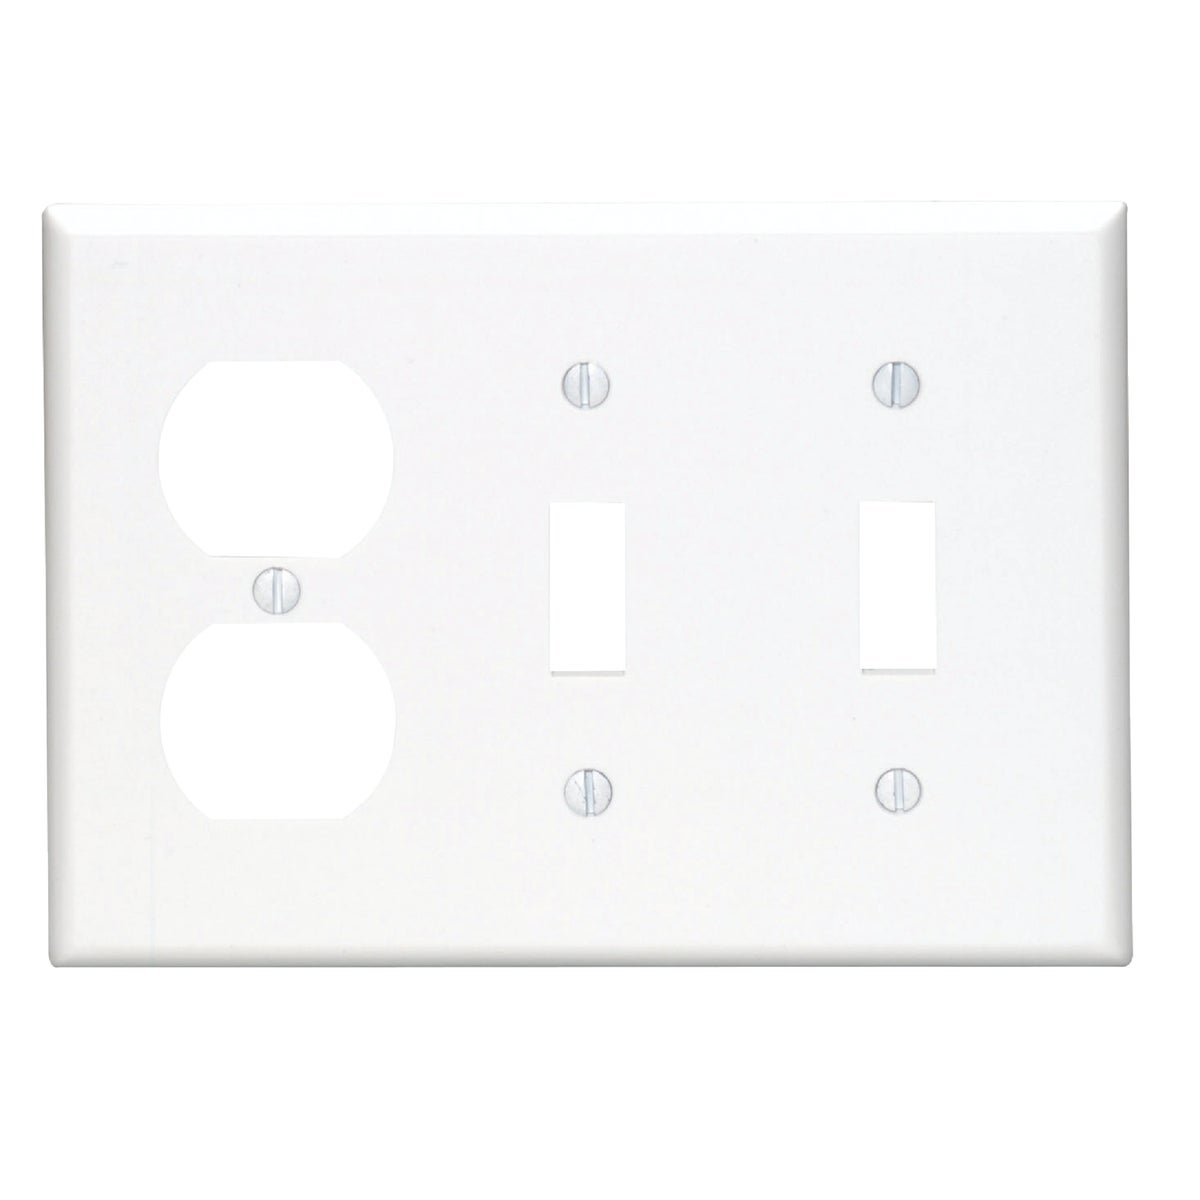 WHT 2TOGL/OUT WALL PLATE